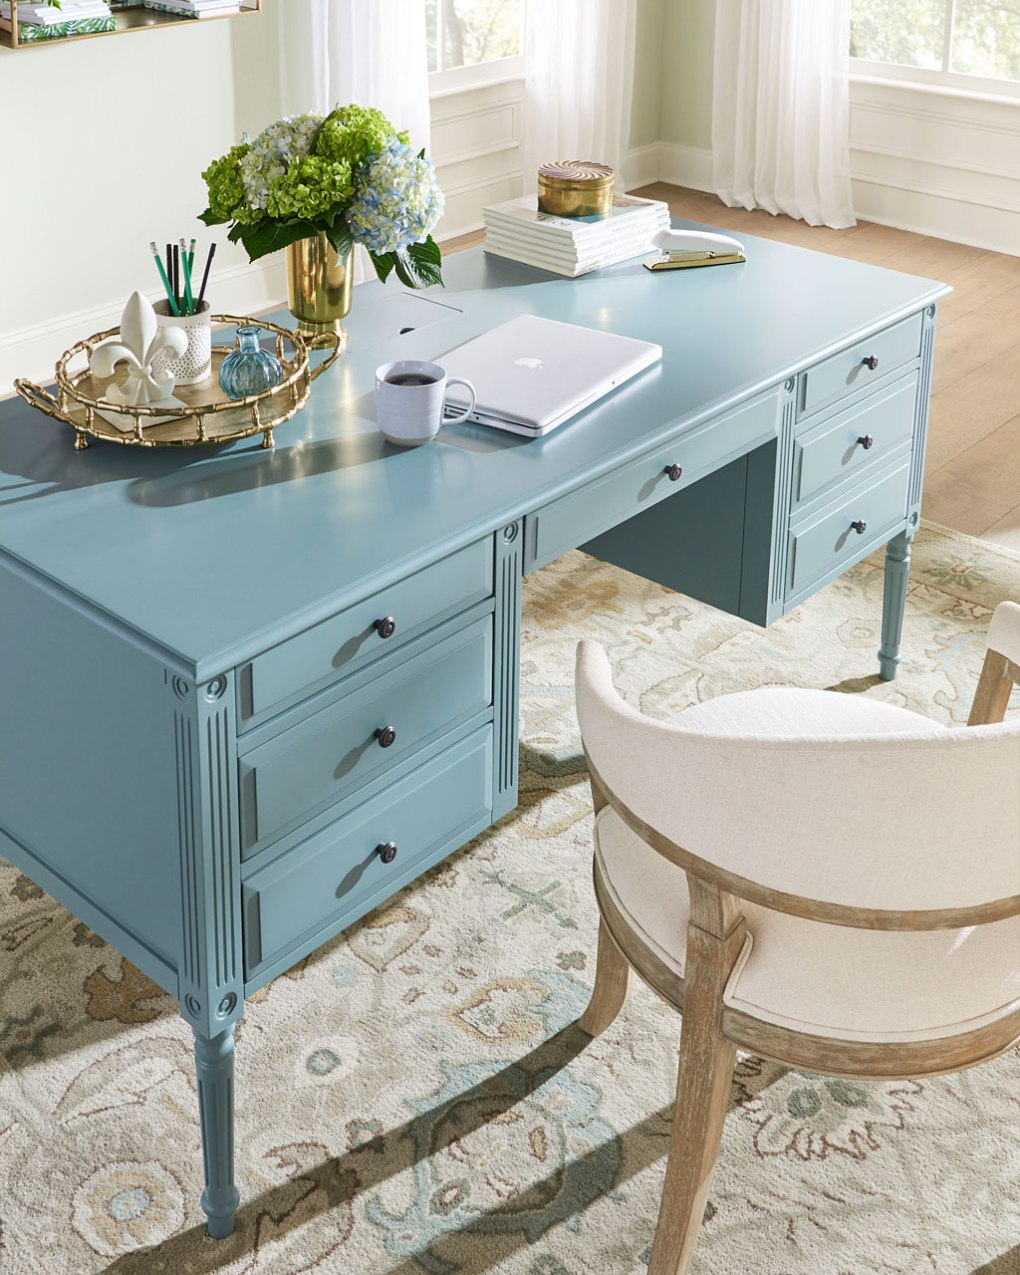 Create a work from home setup with an expansive desk surface from Ballard Designs